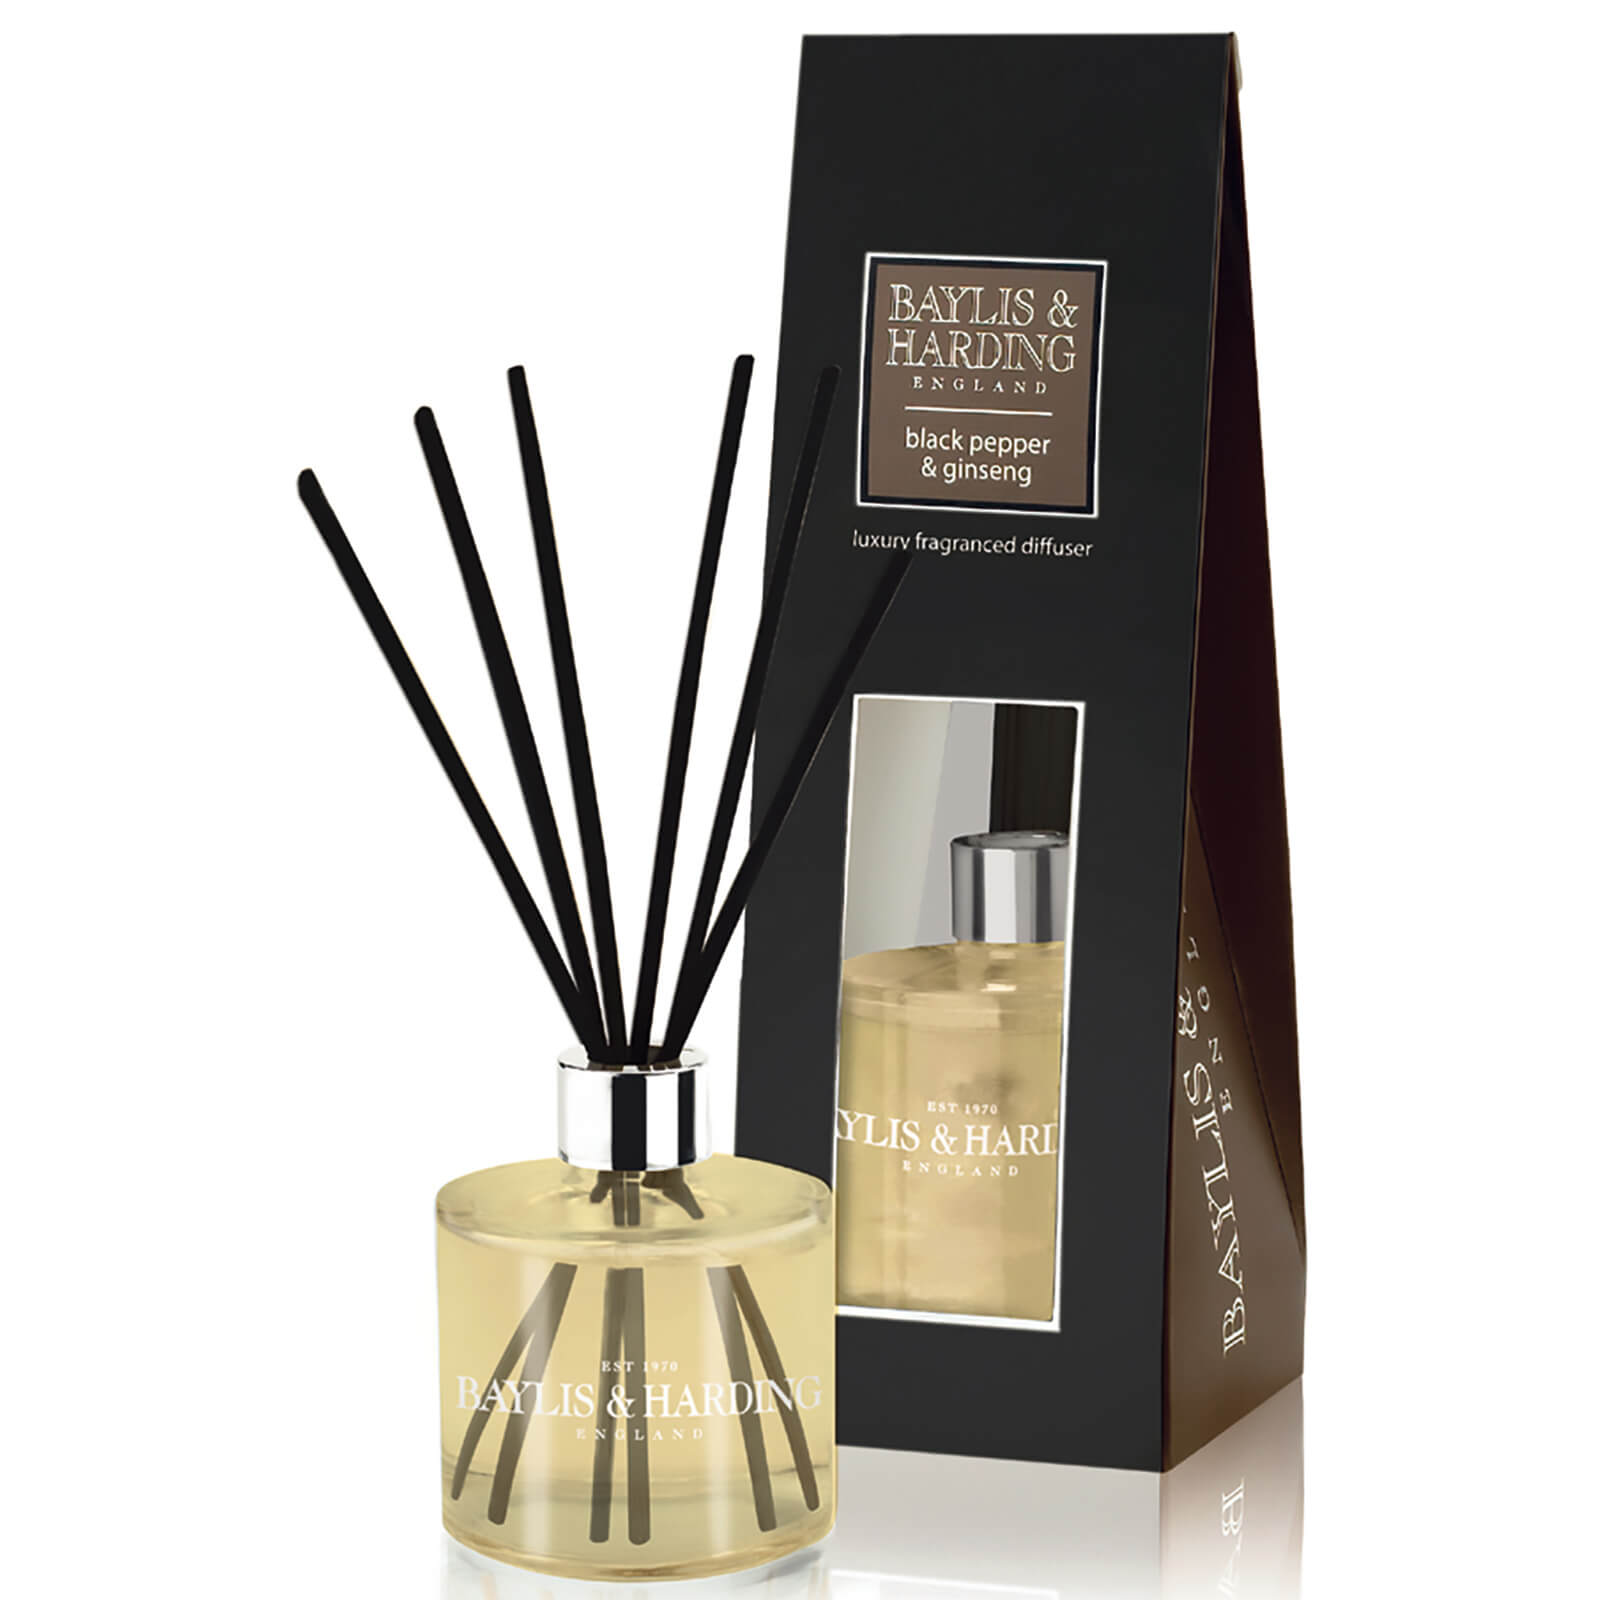 Baylis & Harding Black Pepper and Ginseng Diffuser